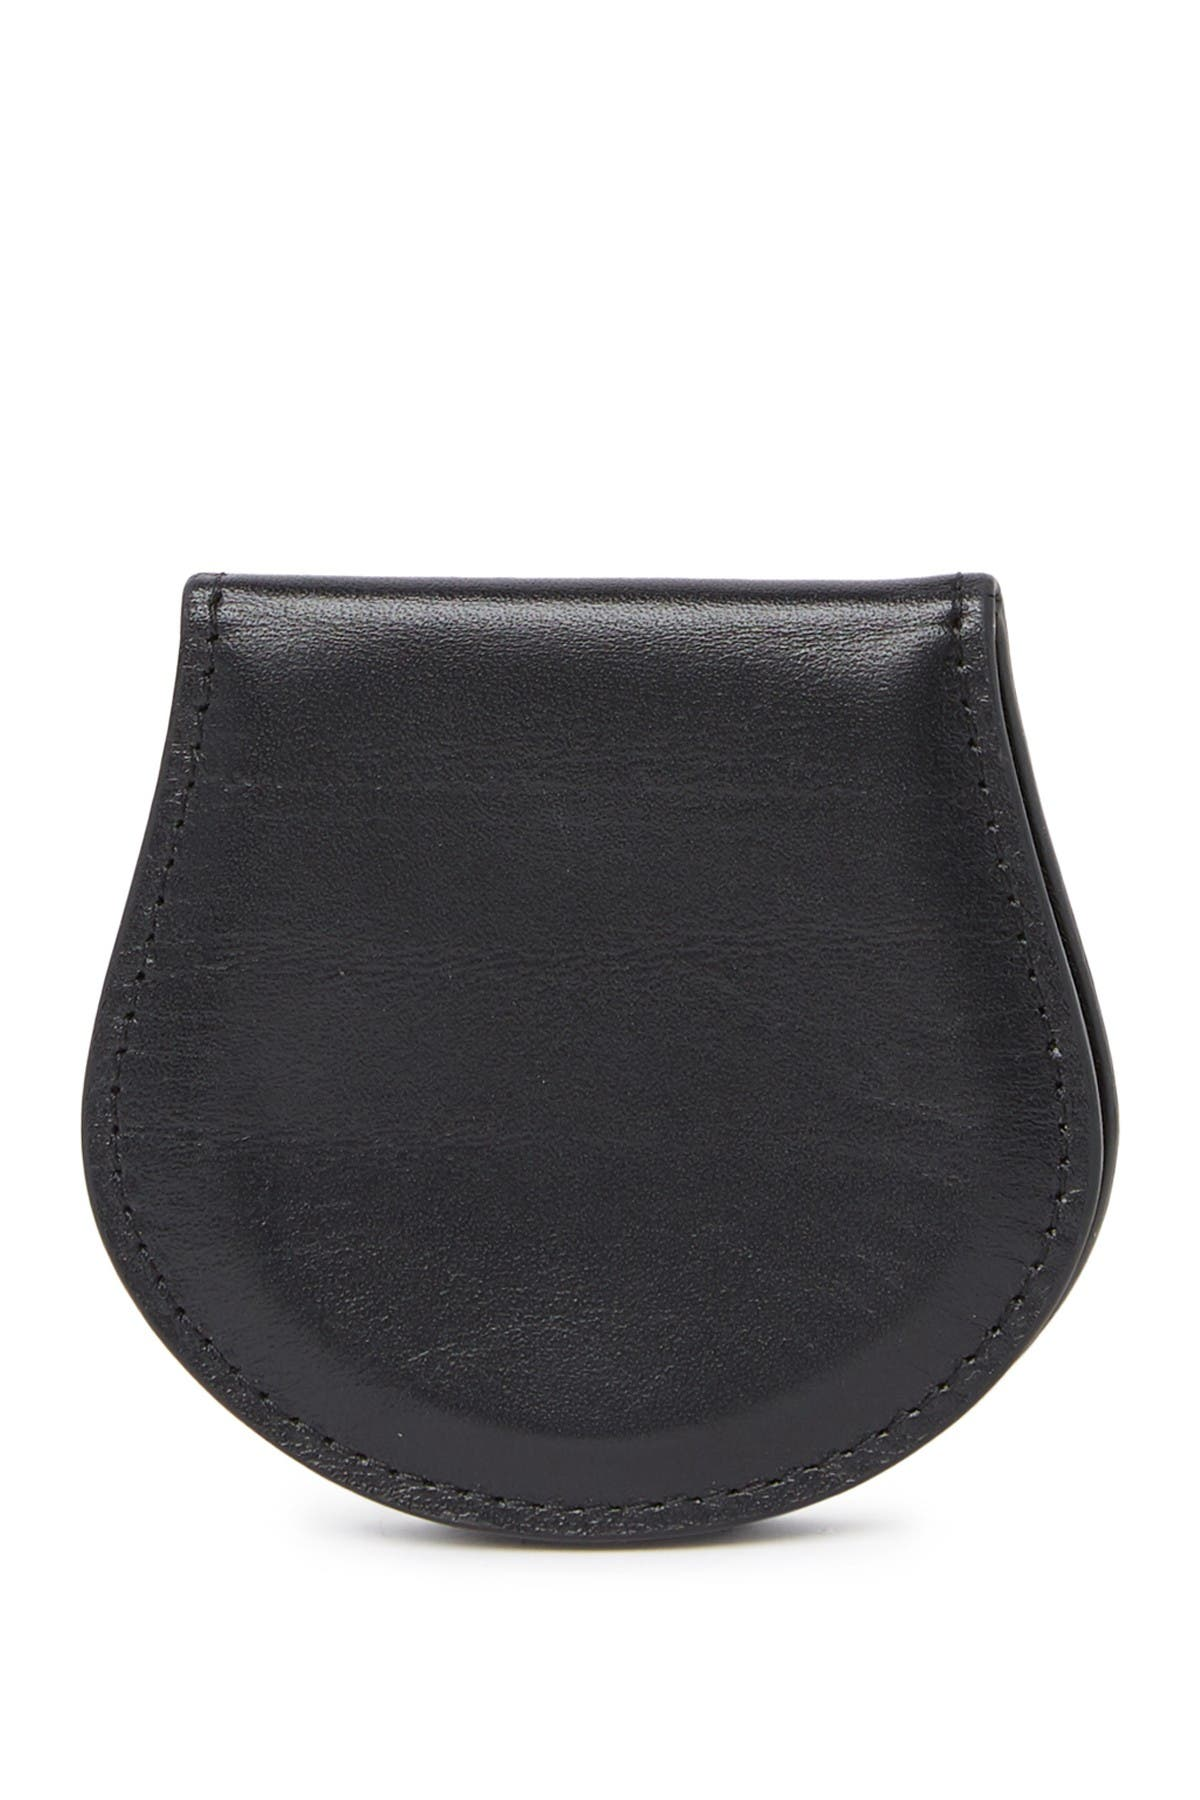 Image of BOSCA Leather Coin Purse